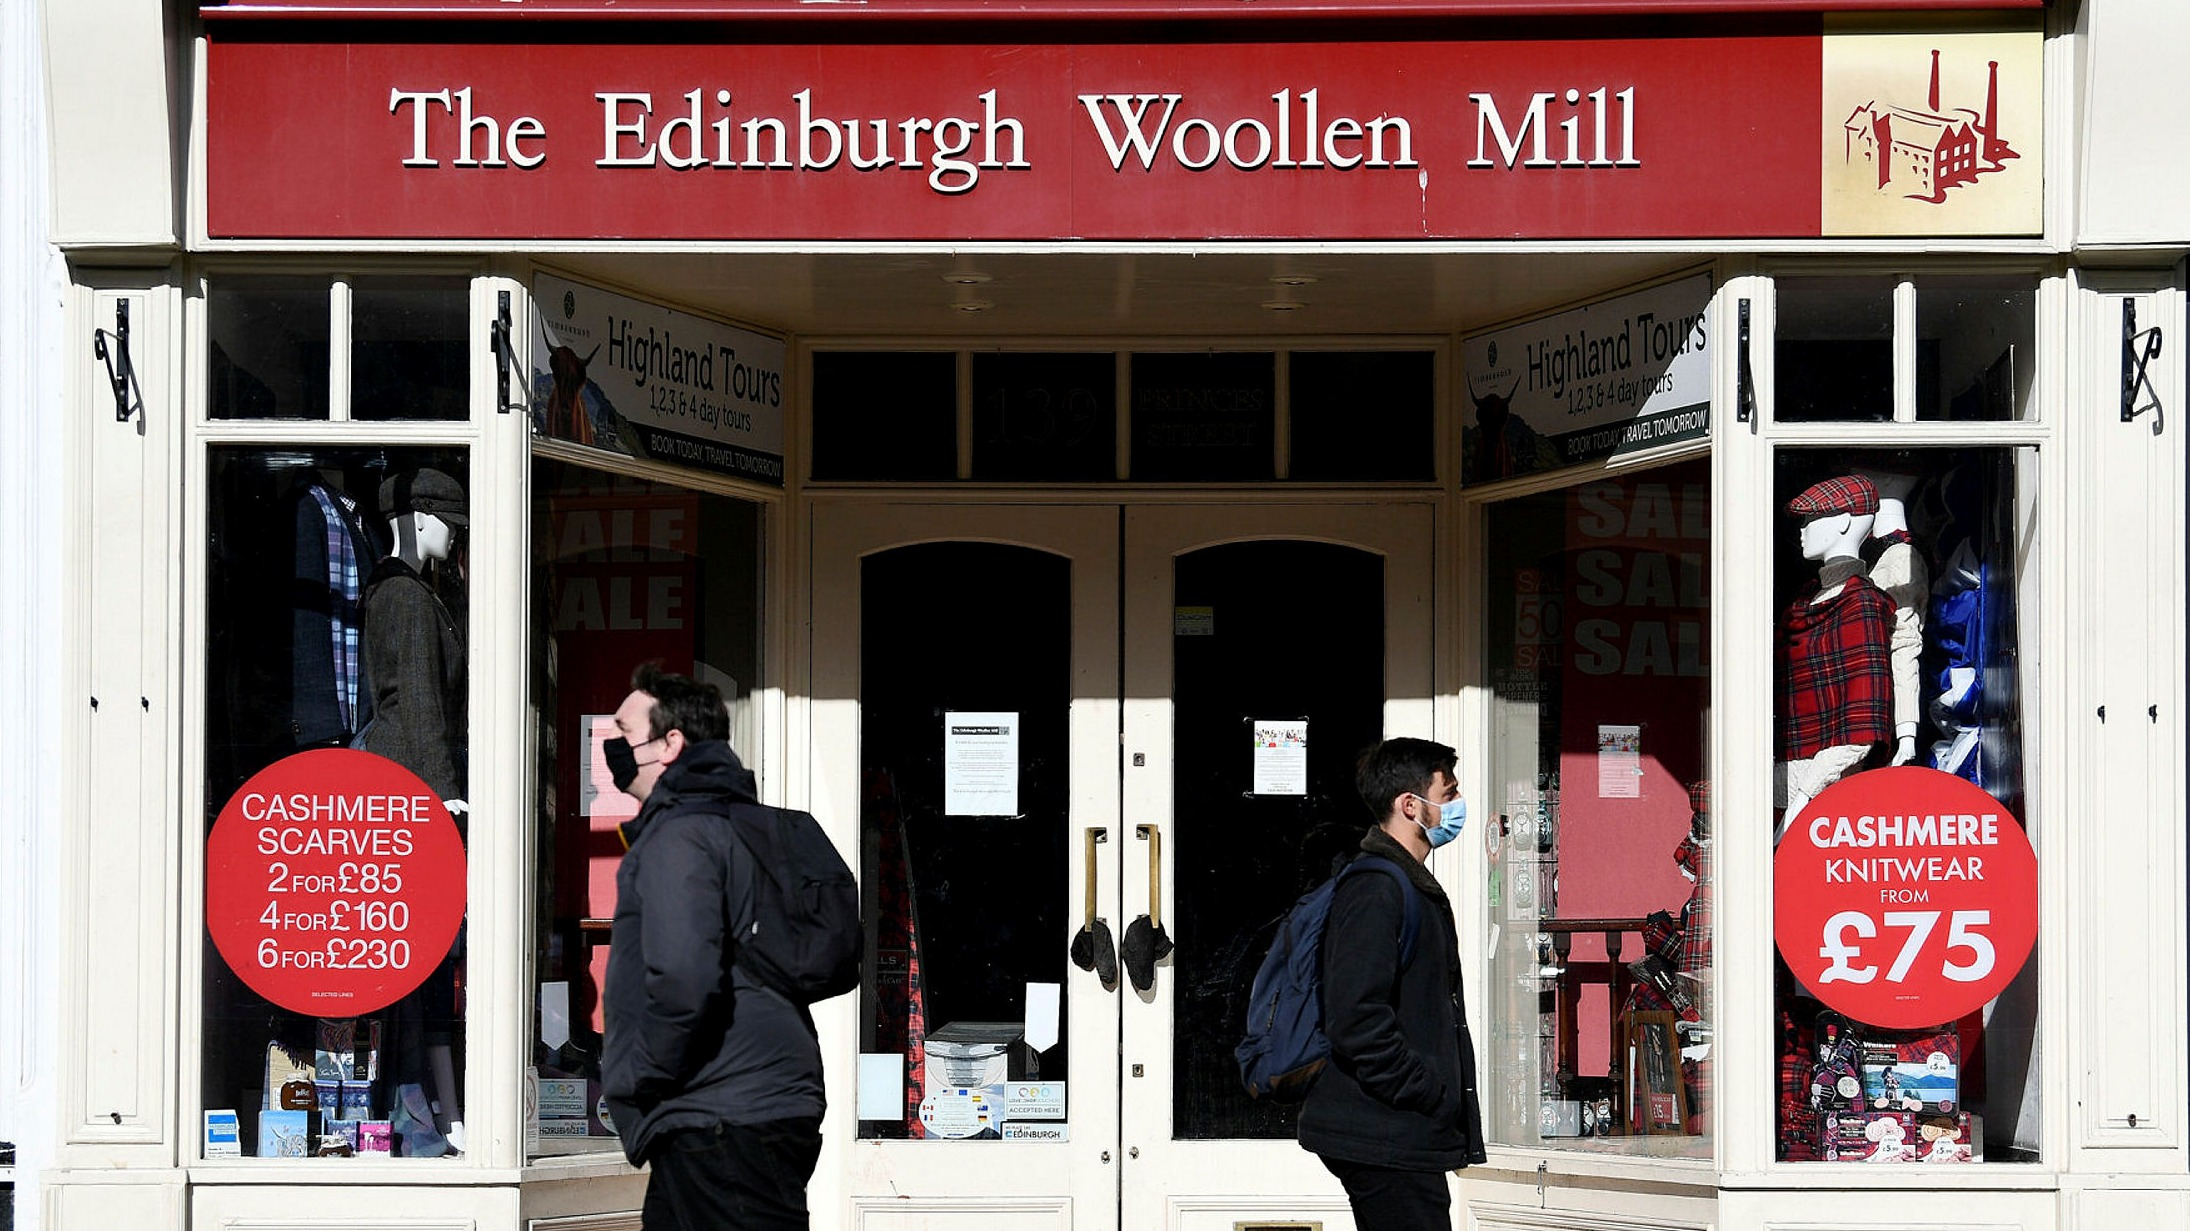 Edinburgh Woollen Mill On Brink Of Administration Financial Times